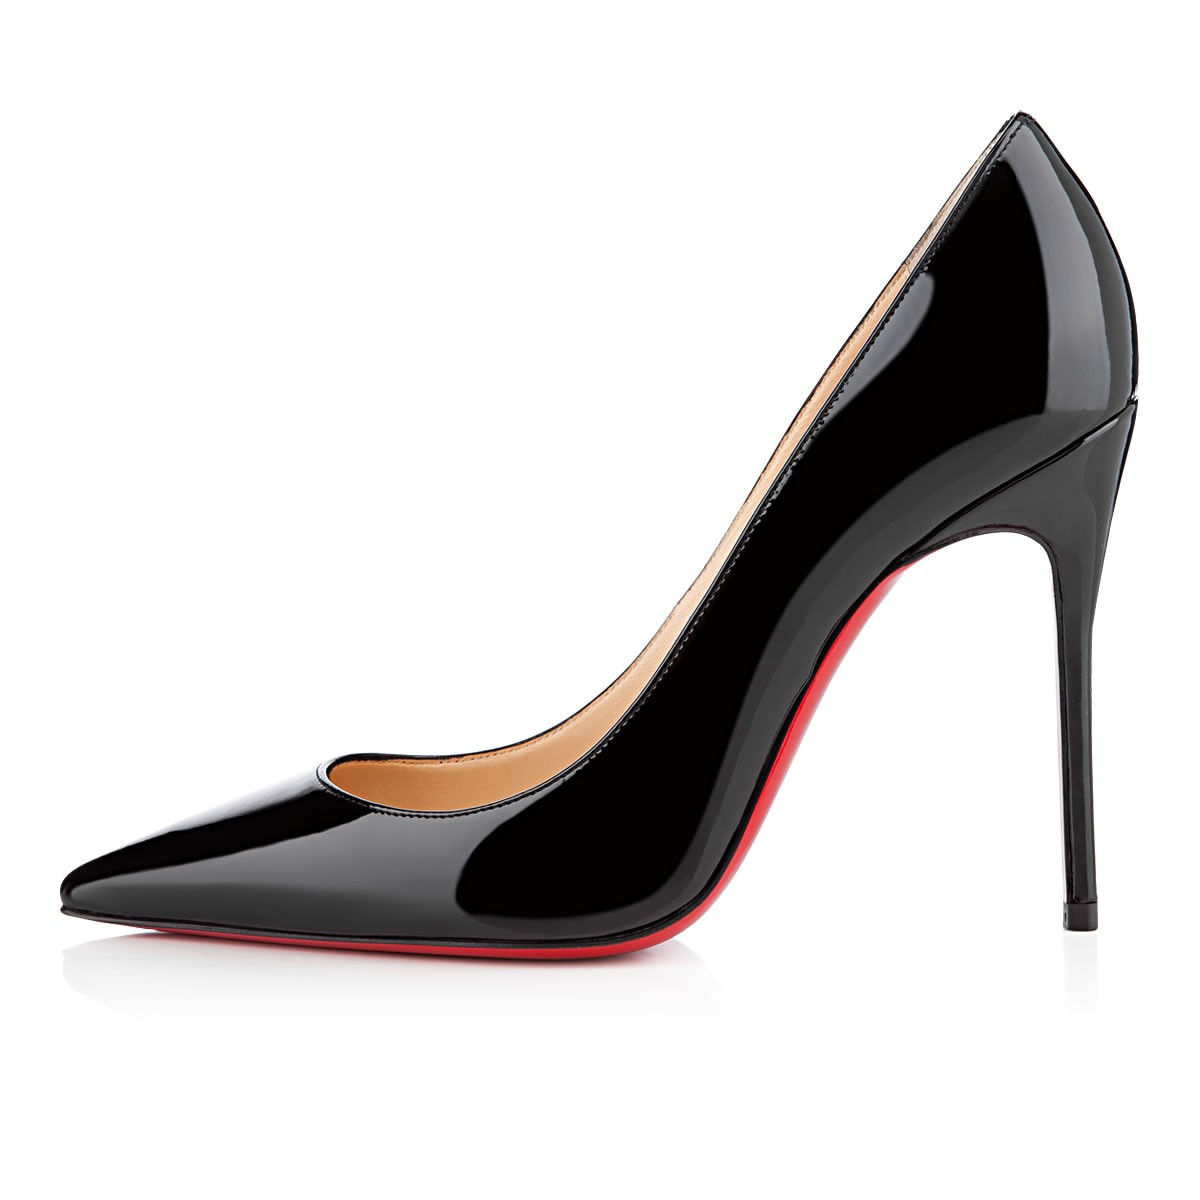 christian louboutin high heels price